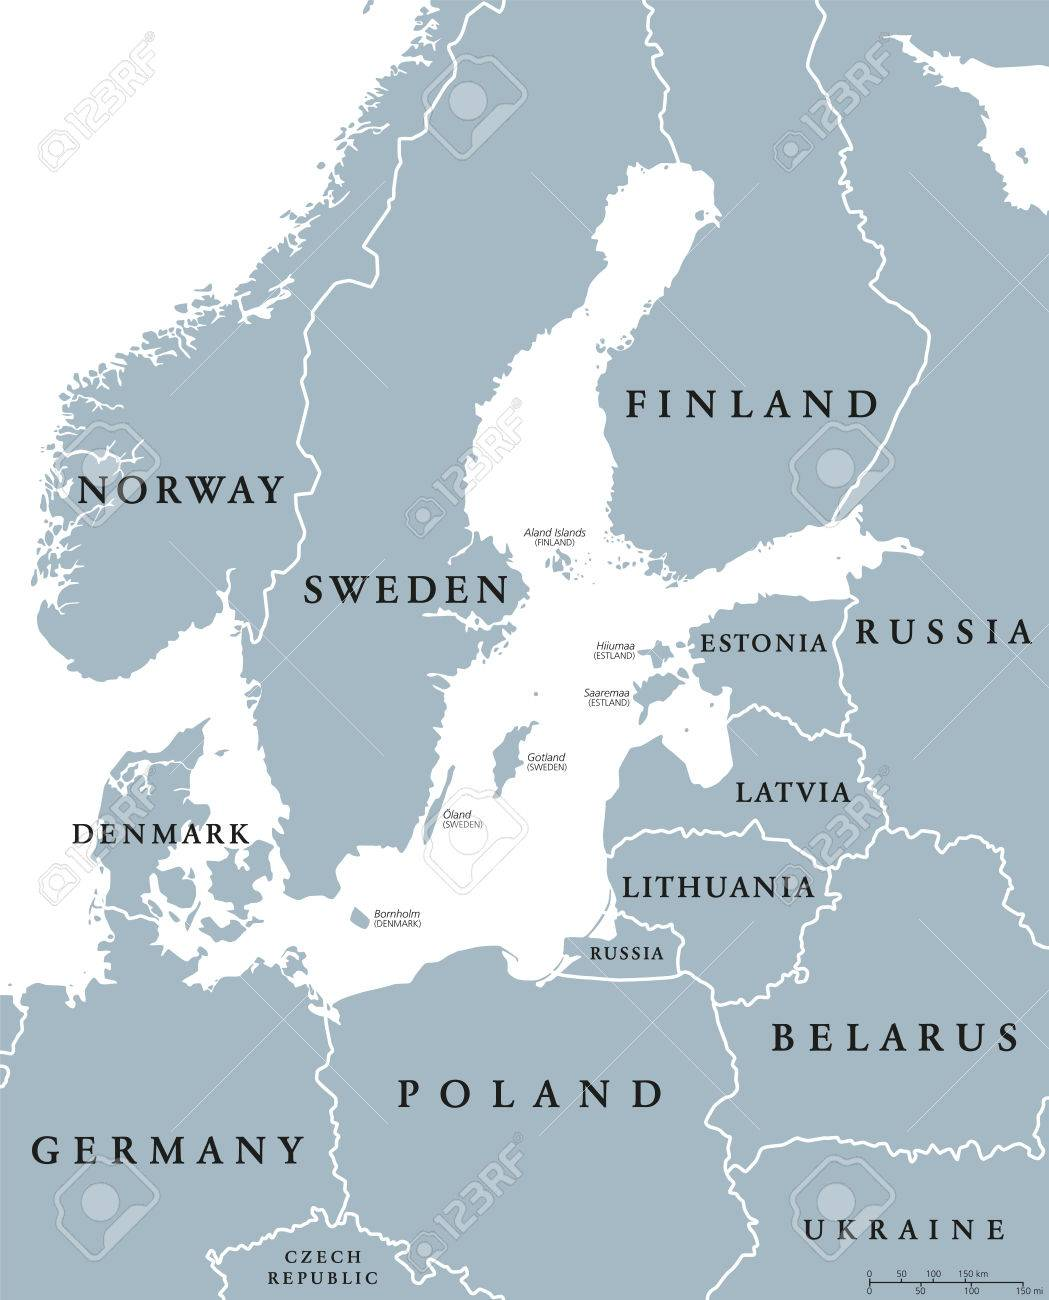 Baltic Sea Area Countries Political Map With National Borders